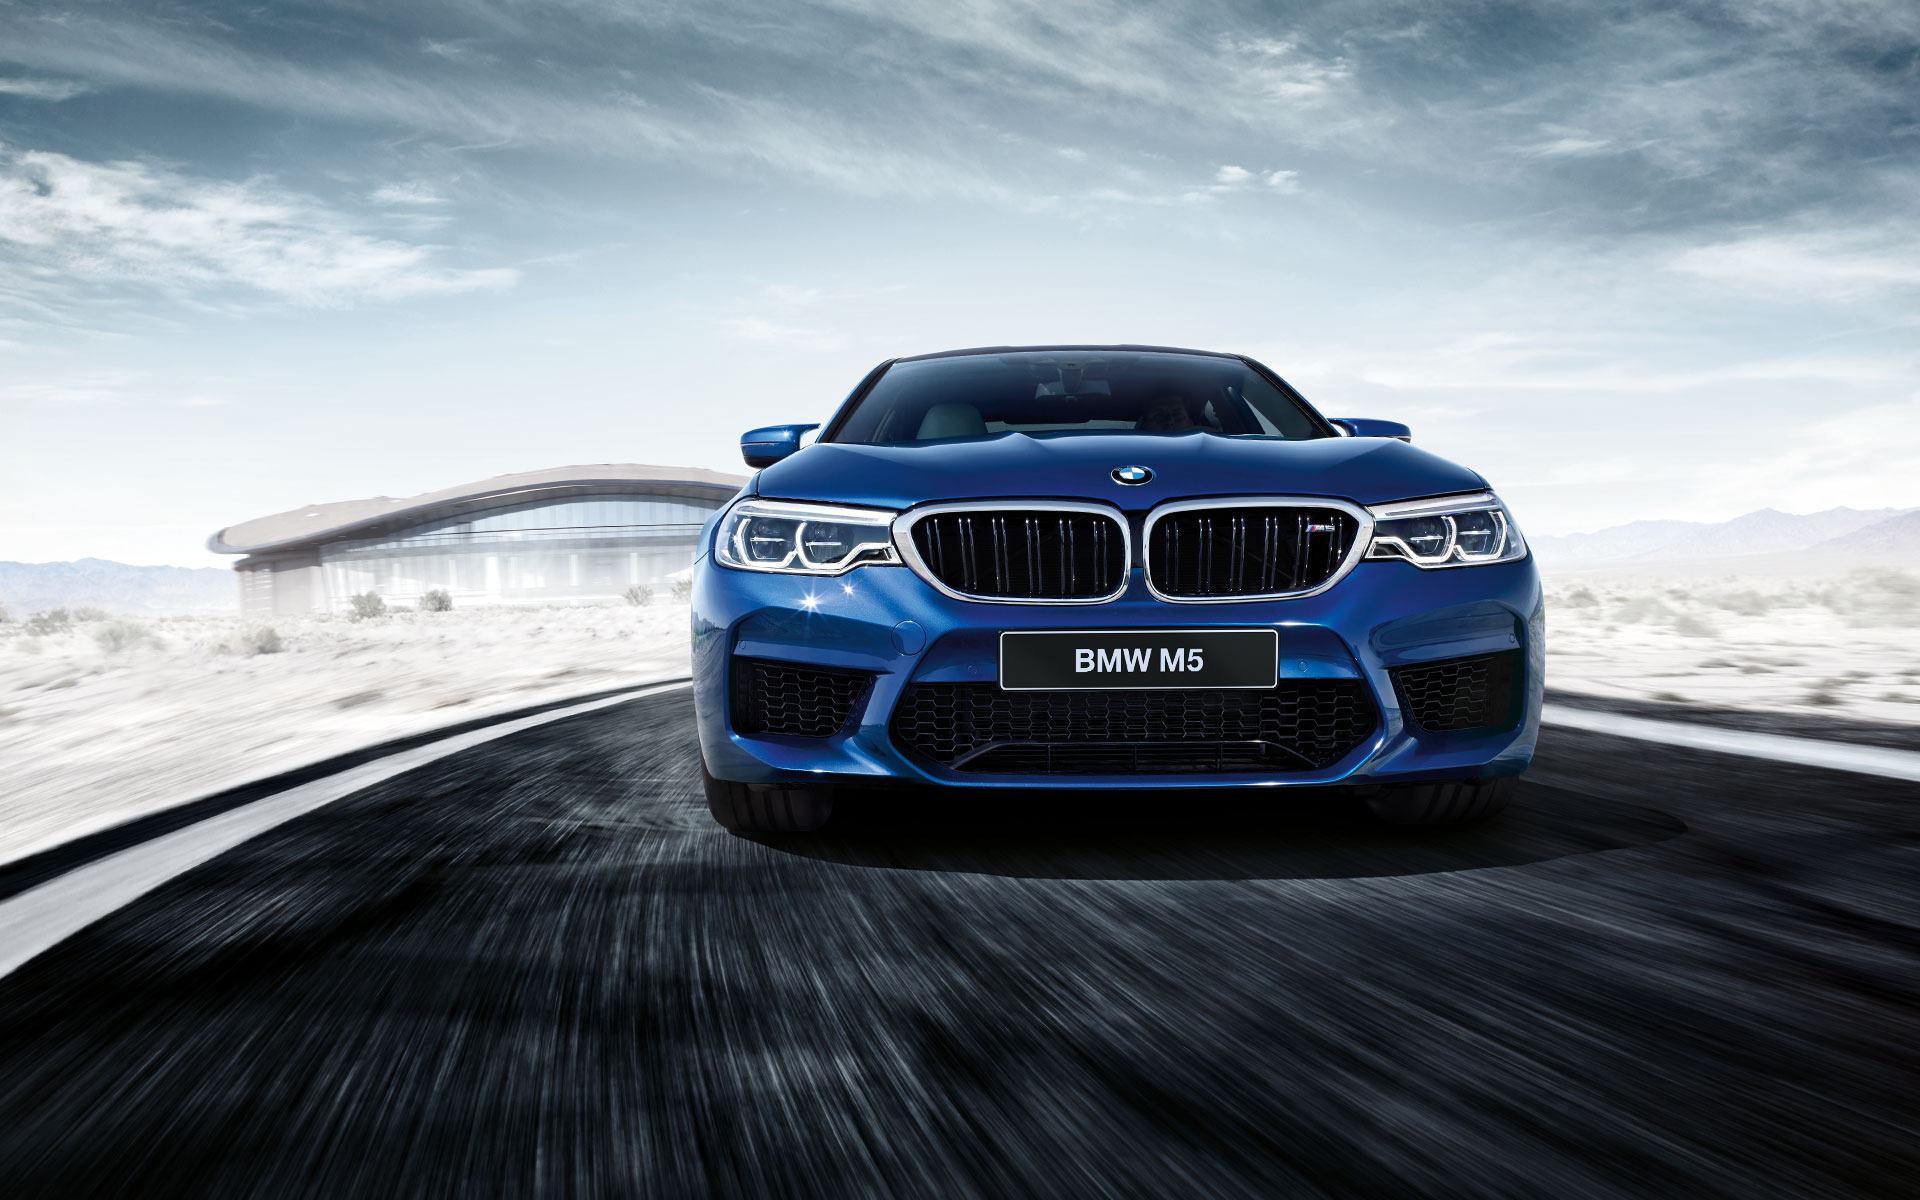 bmw-mseries-m5-Wallpaper-1920x1200-03.jpg.asset.1503412028445